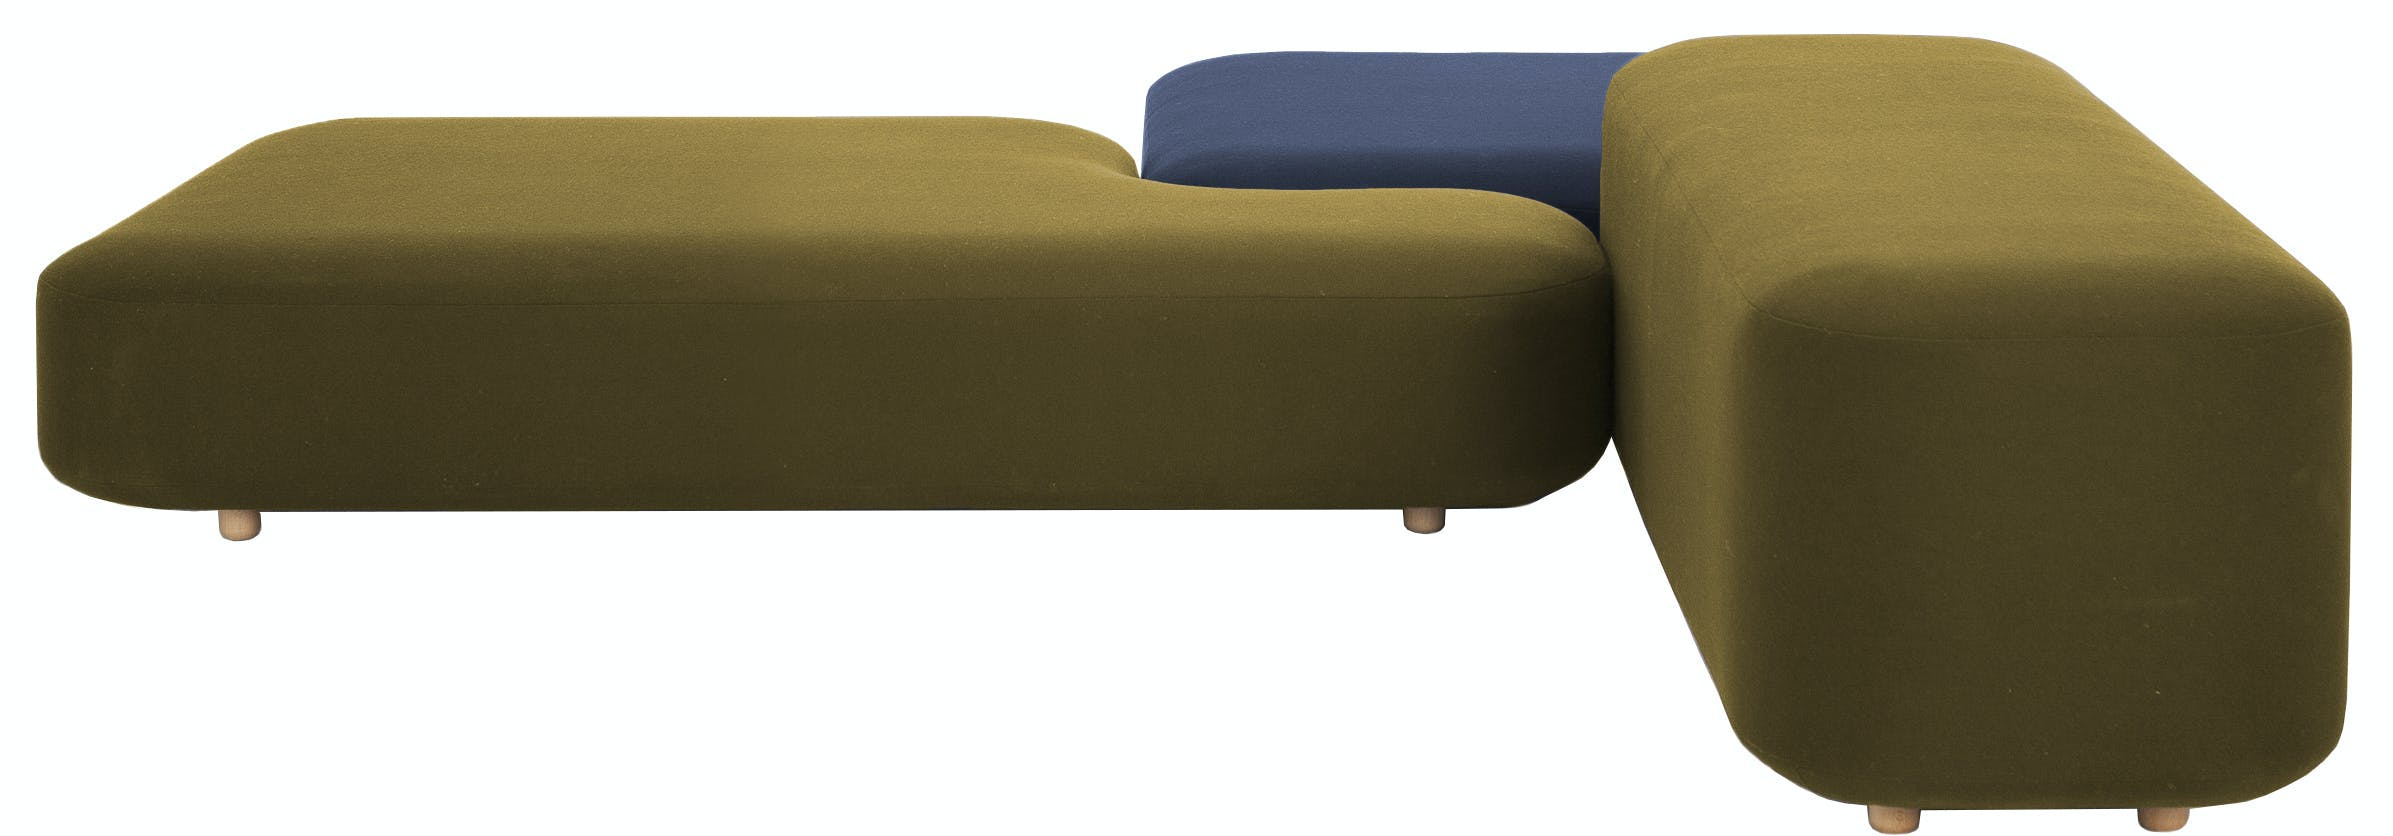 Common Sofa